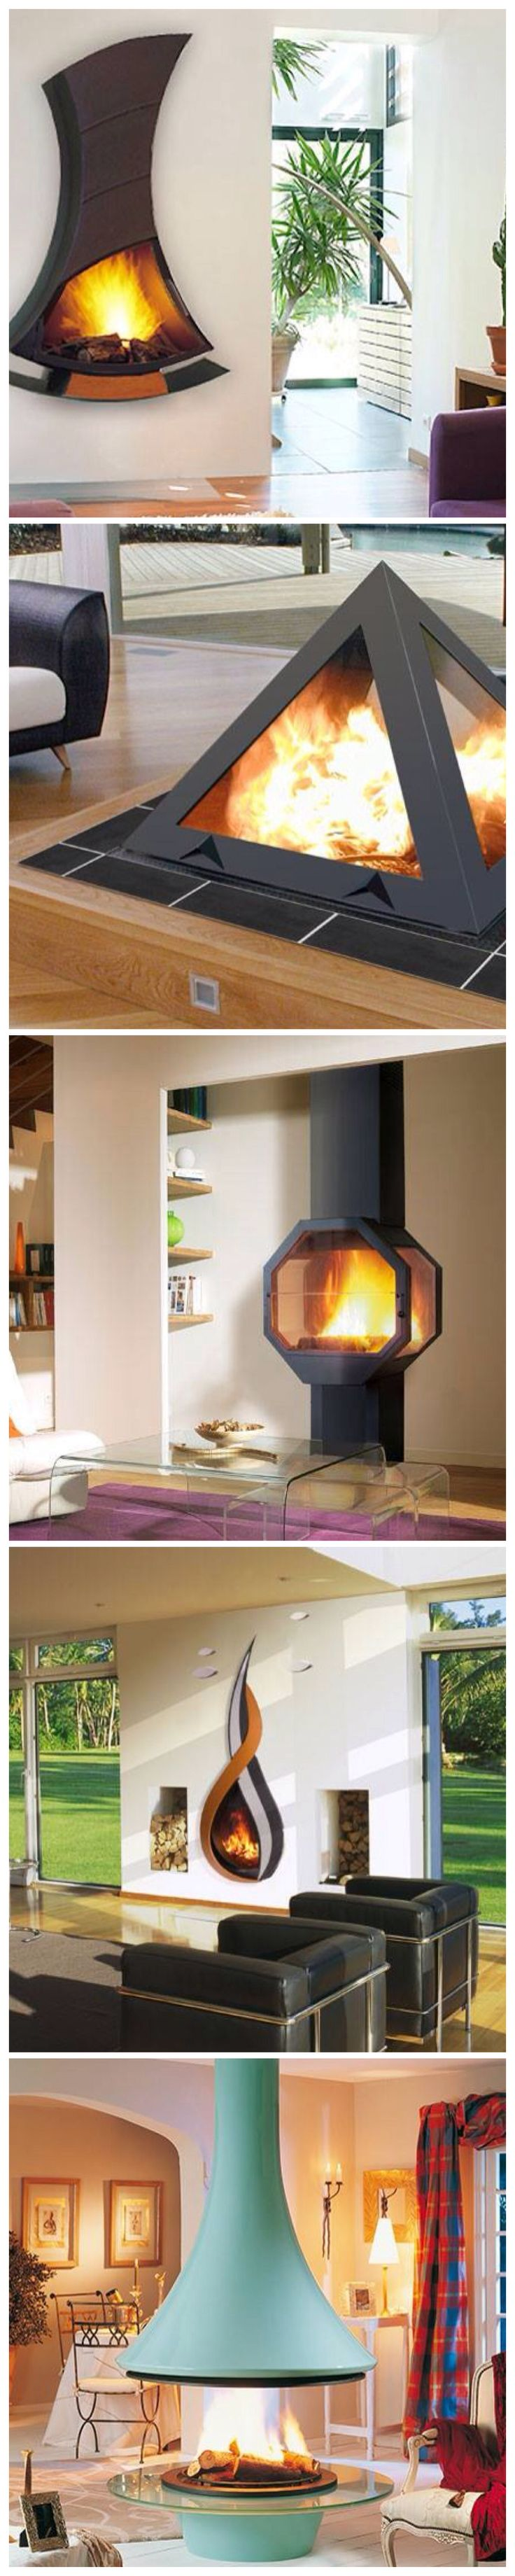 98 best fireplaces images on pinterest indoor fireplaces